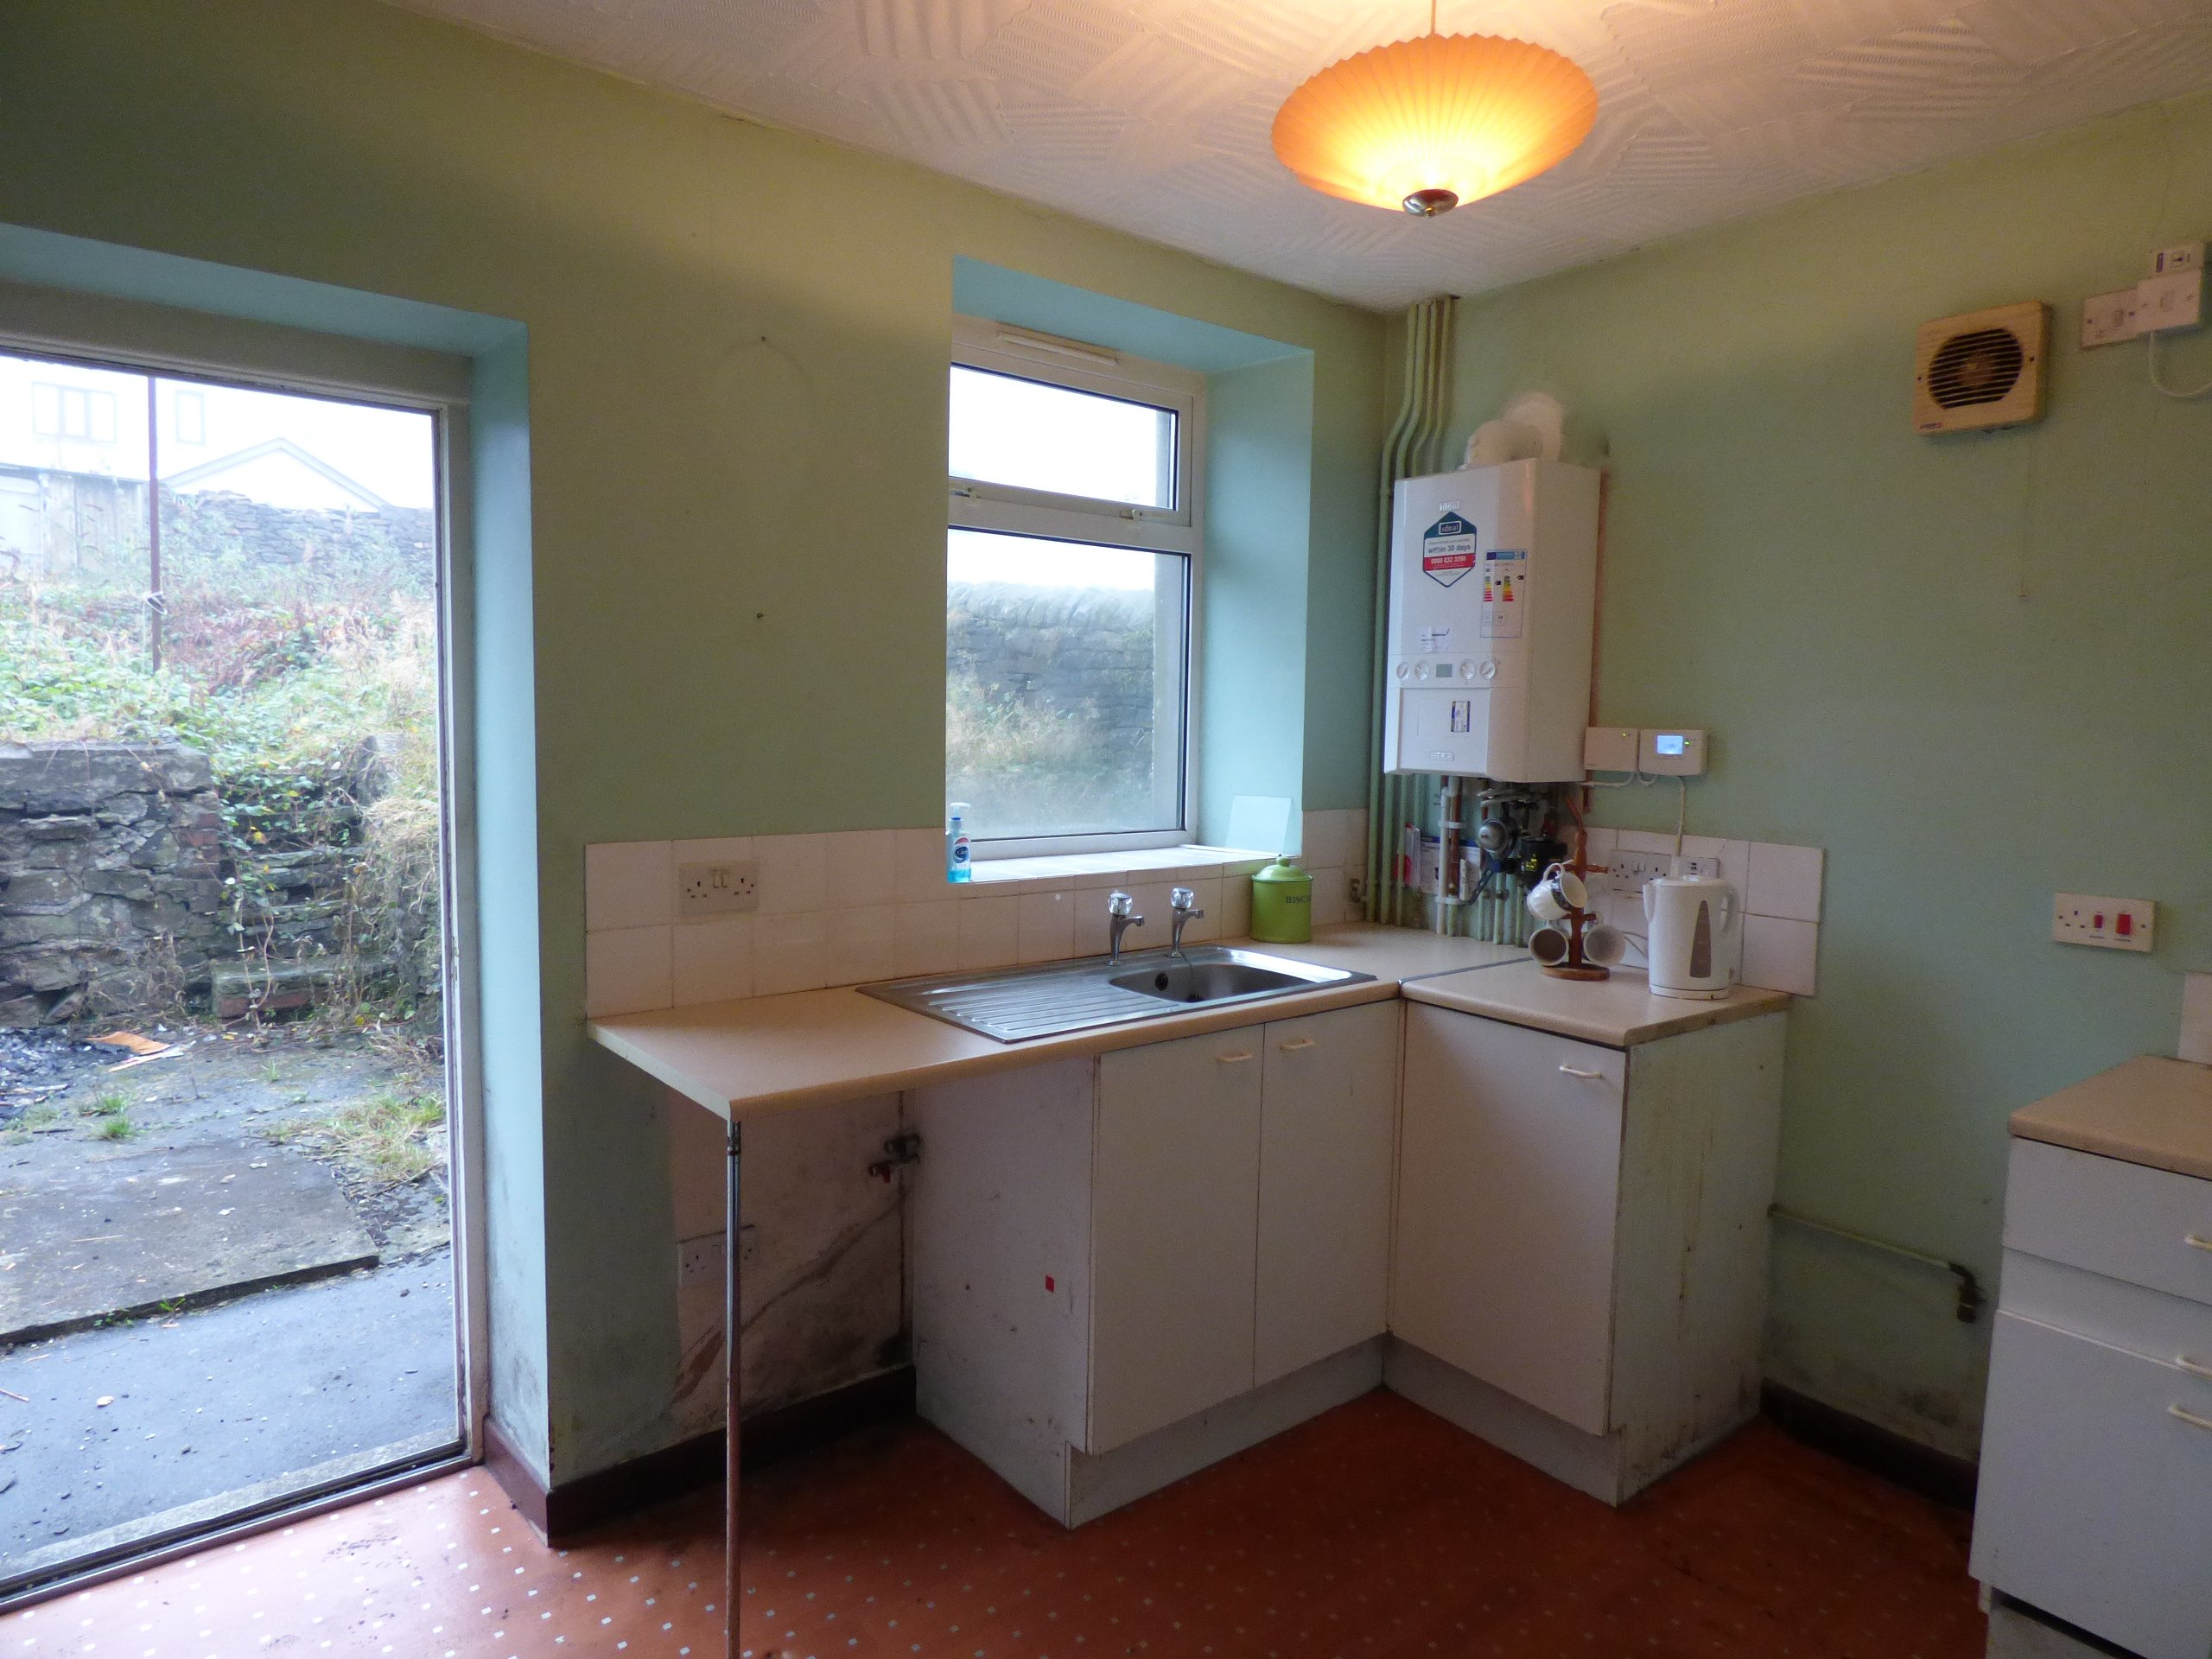 Wisemove Property for sale. Tanybryn House, Pontycymmer. Kitchen